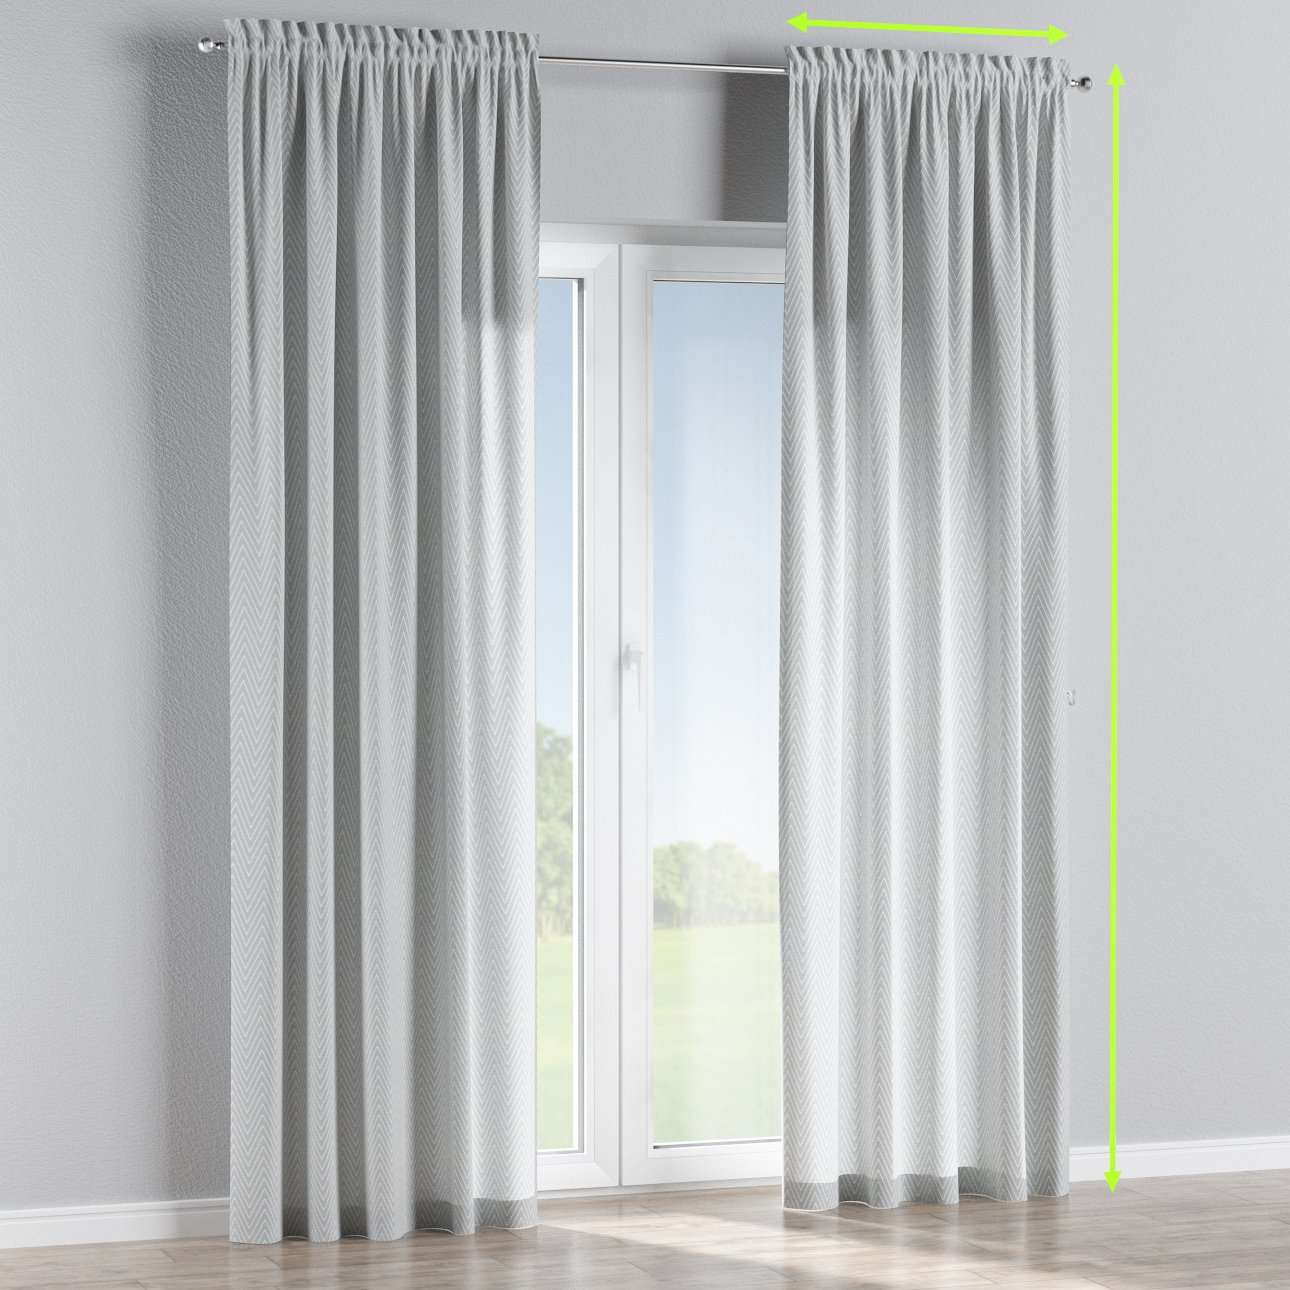 Slot and frill lined curtains in collection Brooklyn, fabric: 137-87